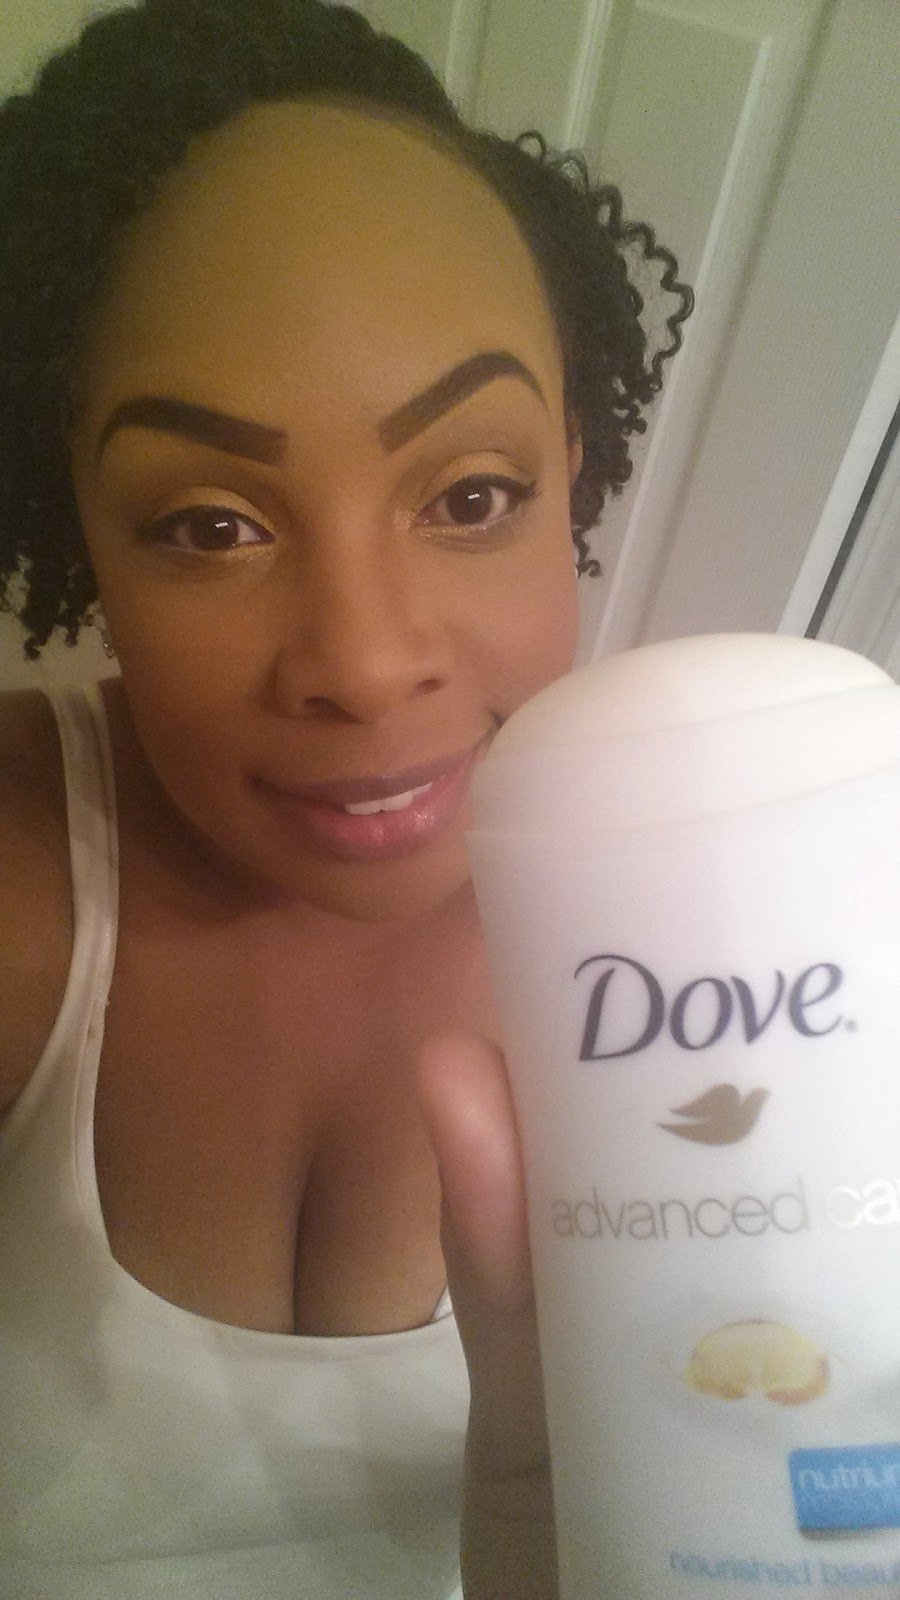 Dove New Advanced Care Deodorant Review- #RaiseYourArms